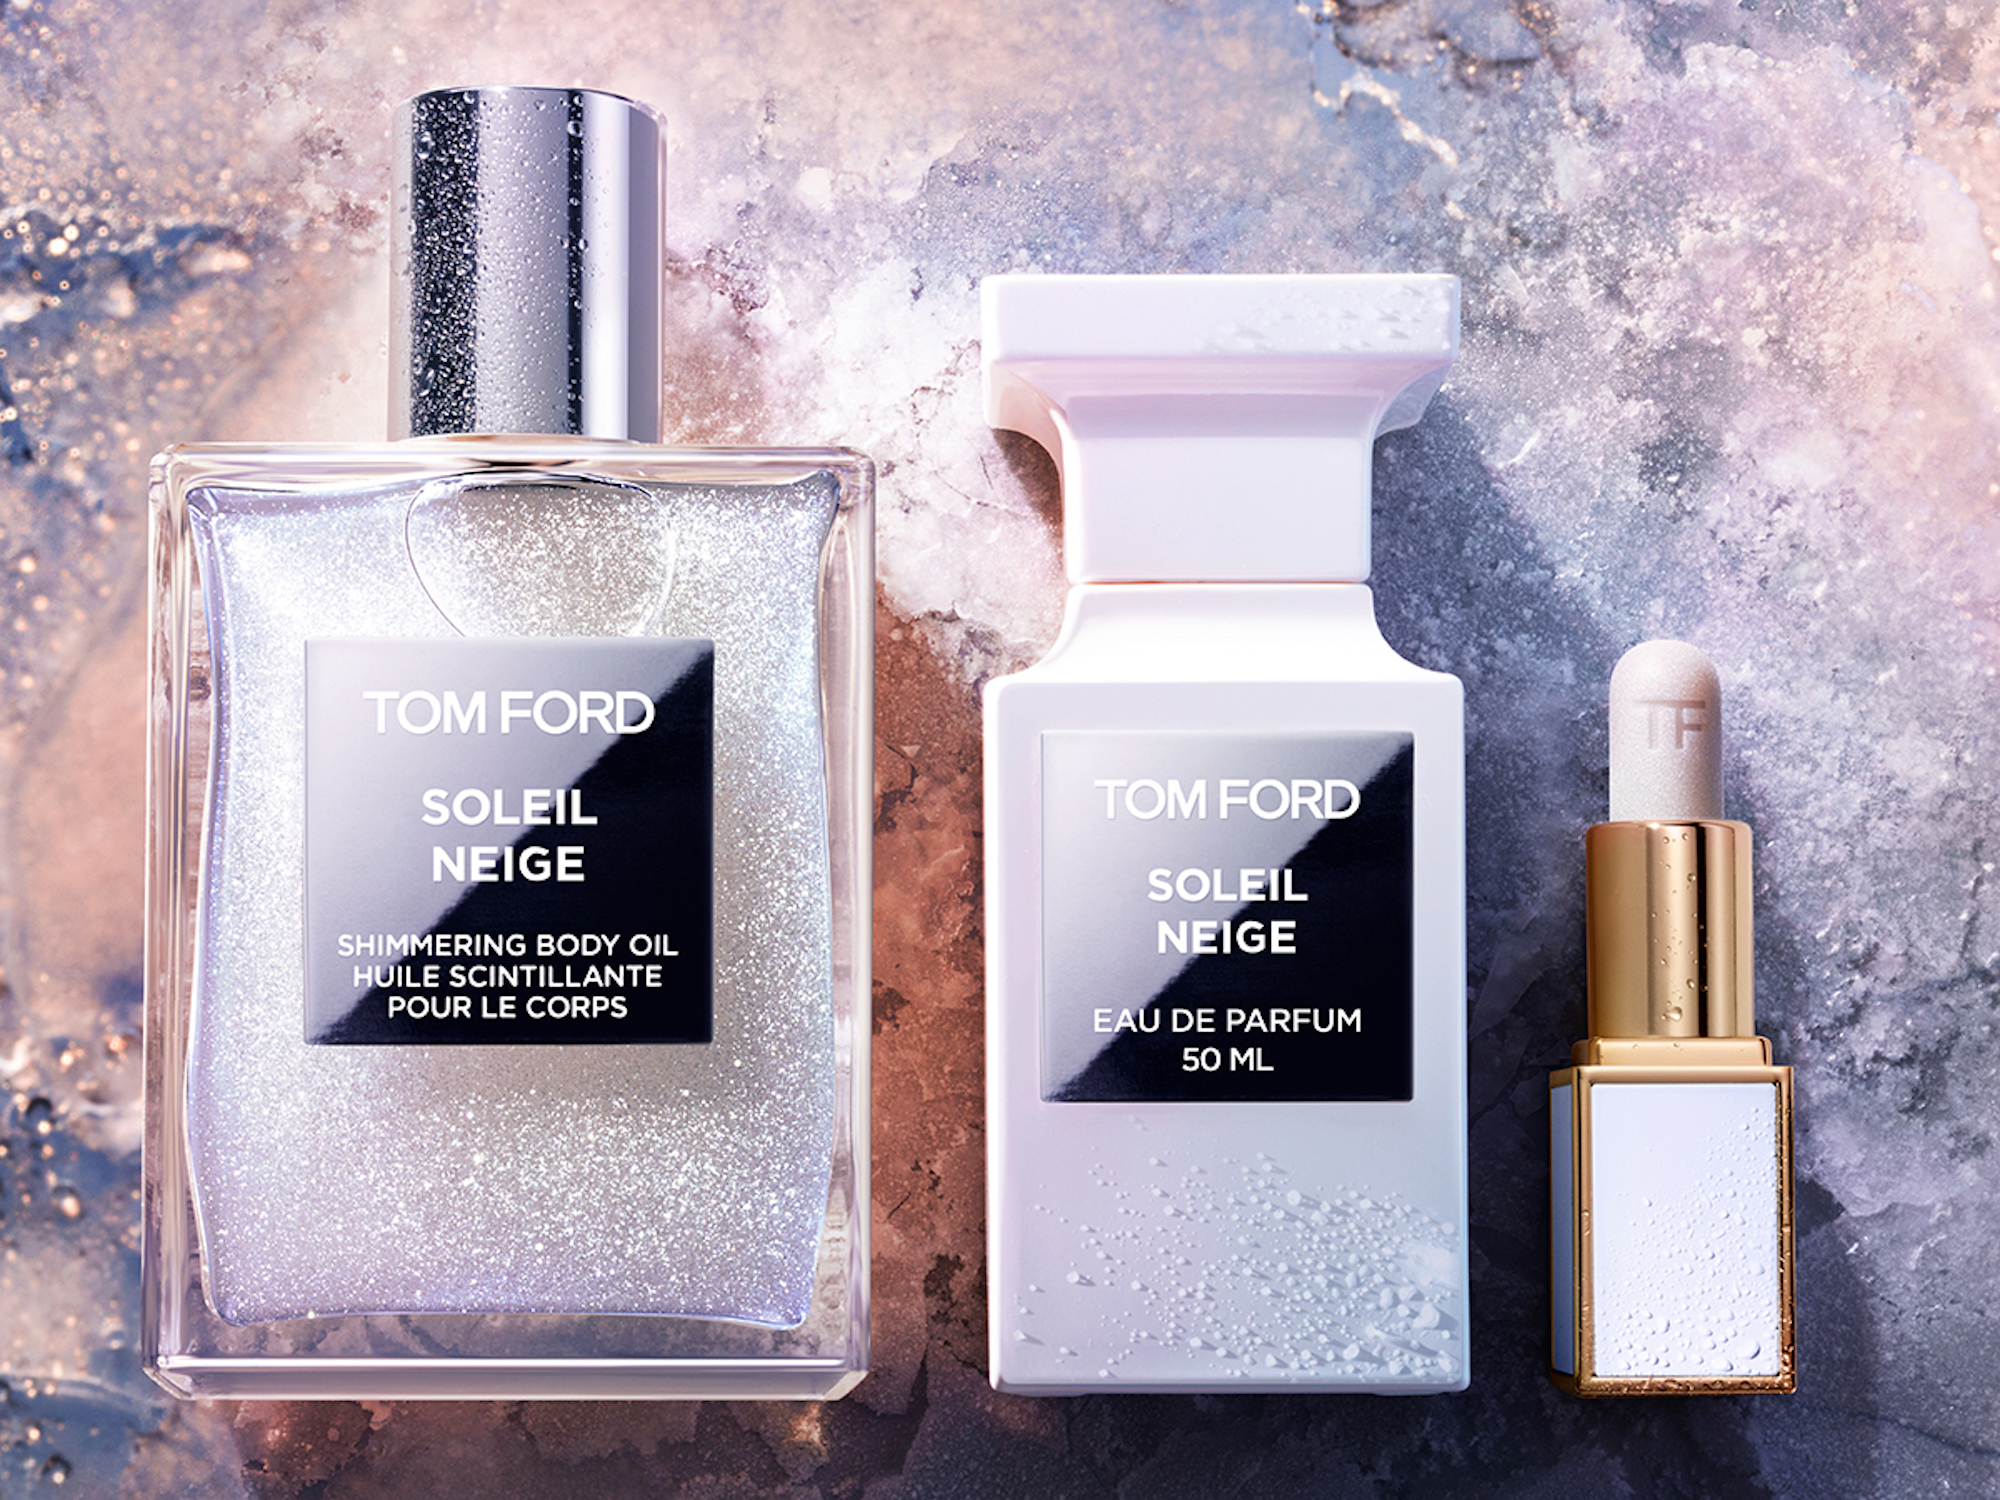 Tom Ford Soleil Neige Body Oil Eau de Parfum